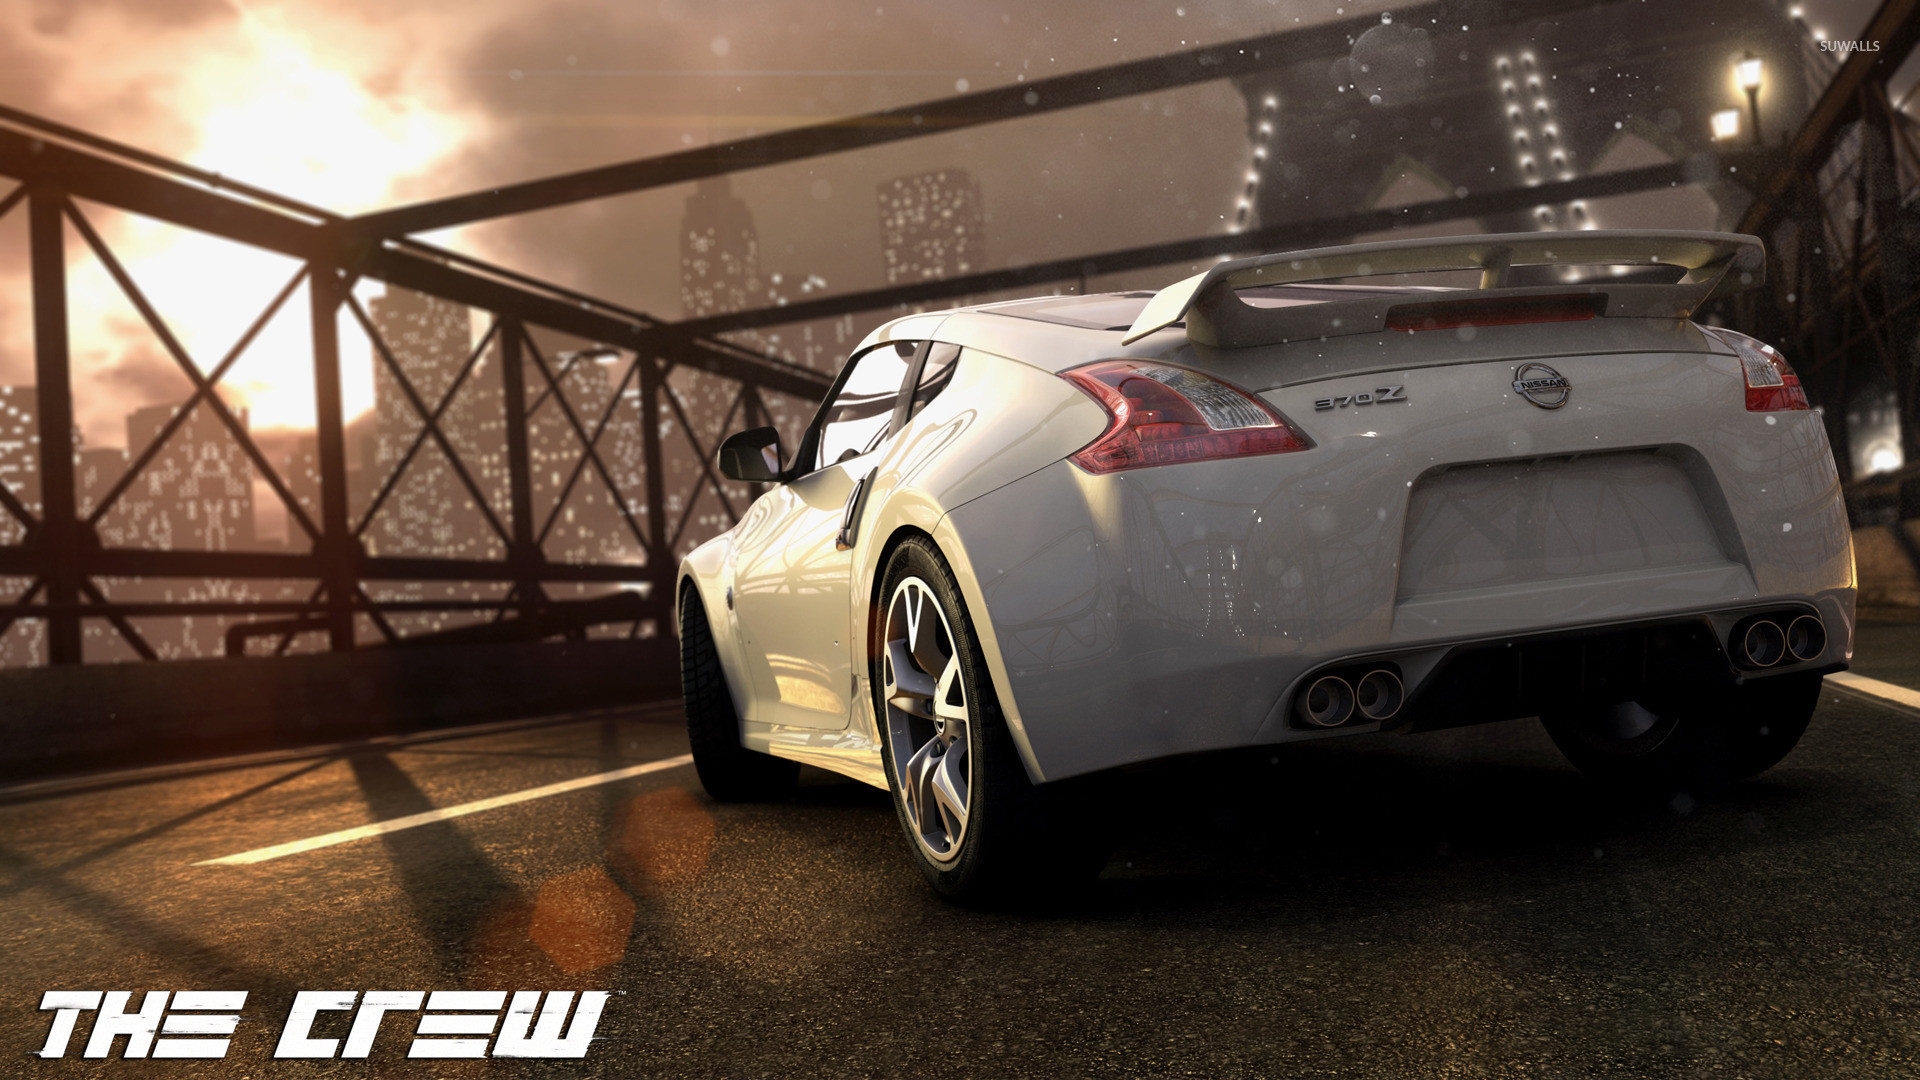 1920x1080 Nissan 370Z - The Crew wallpaper  jpg